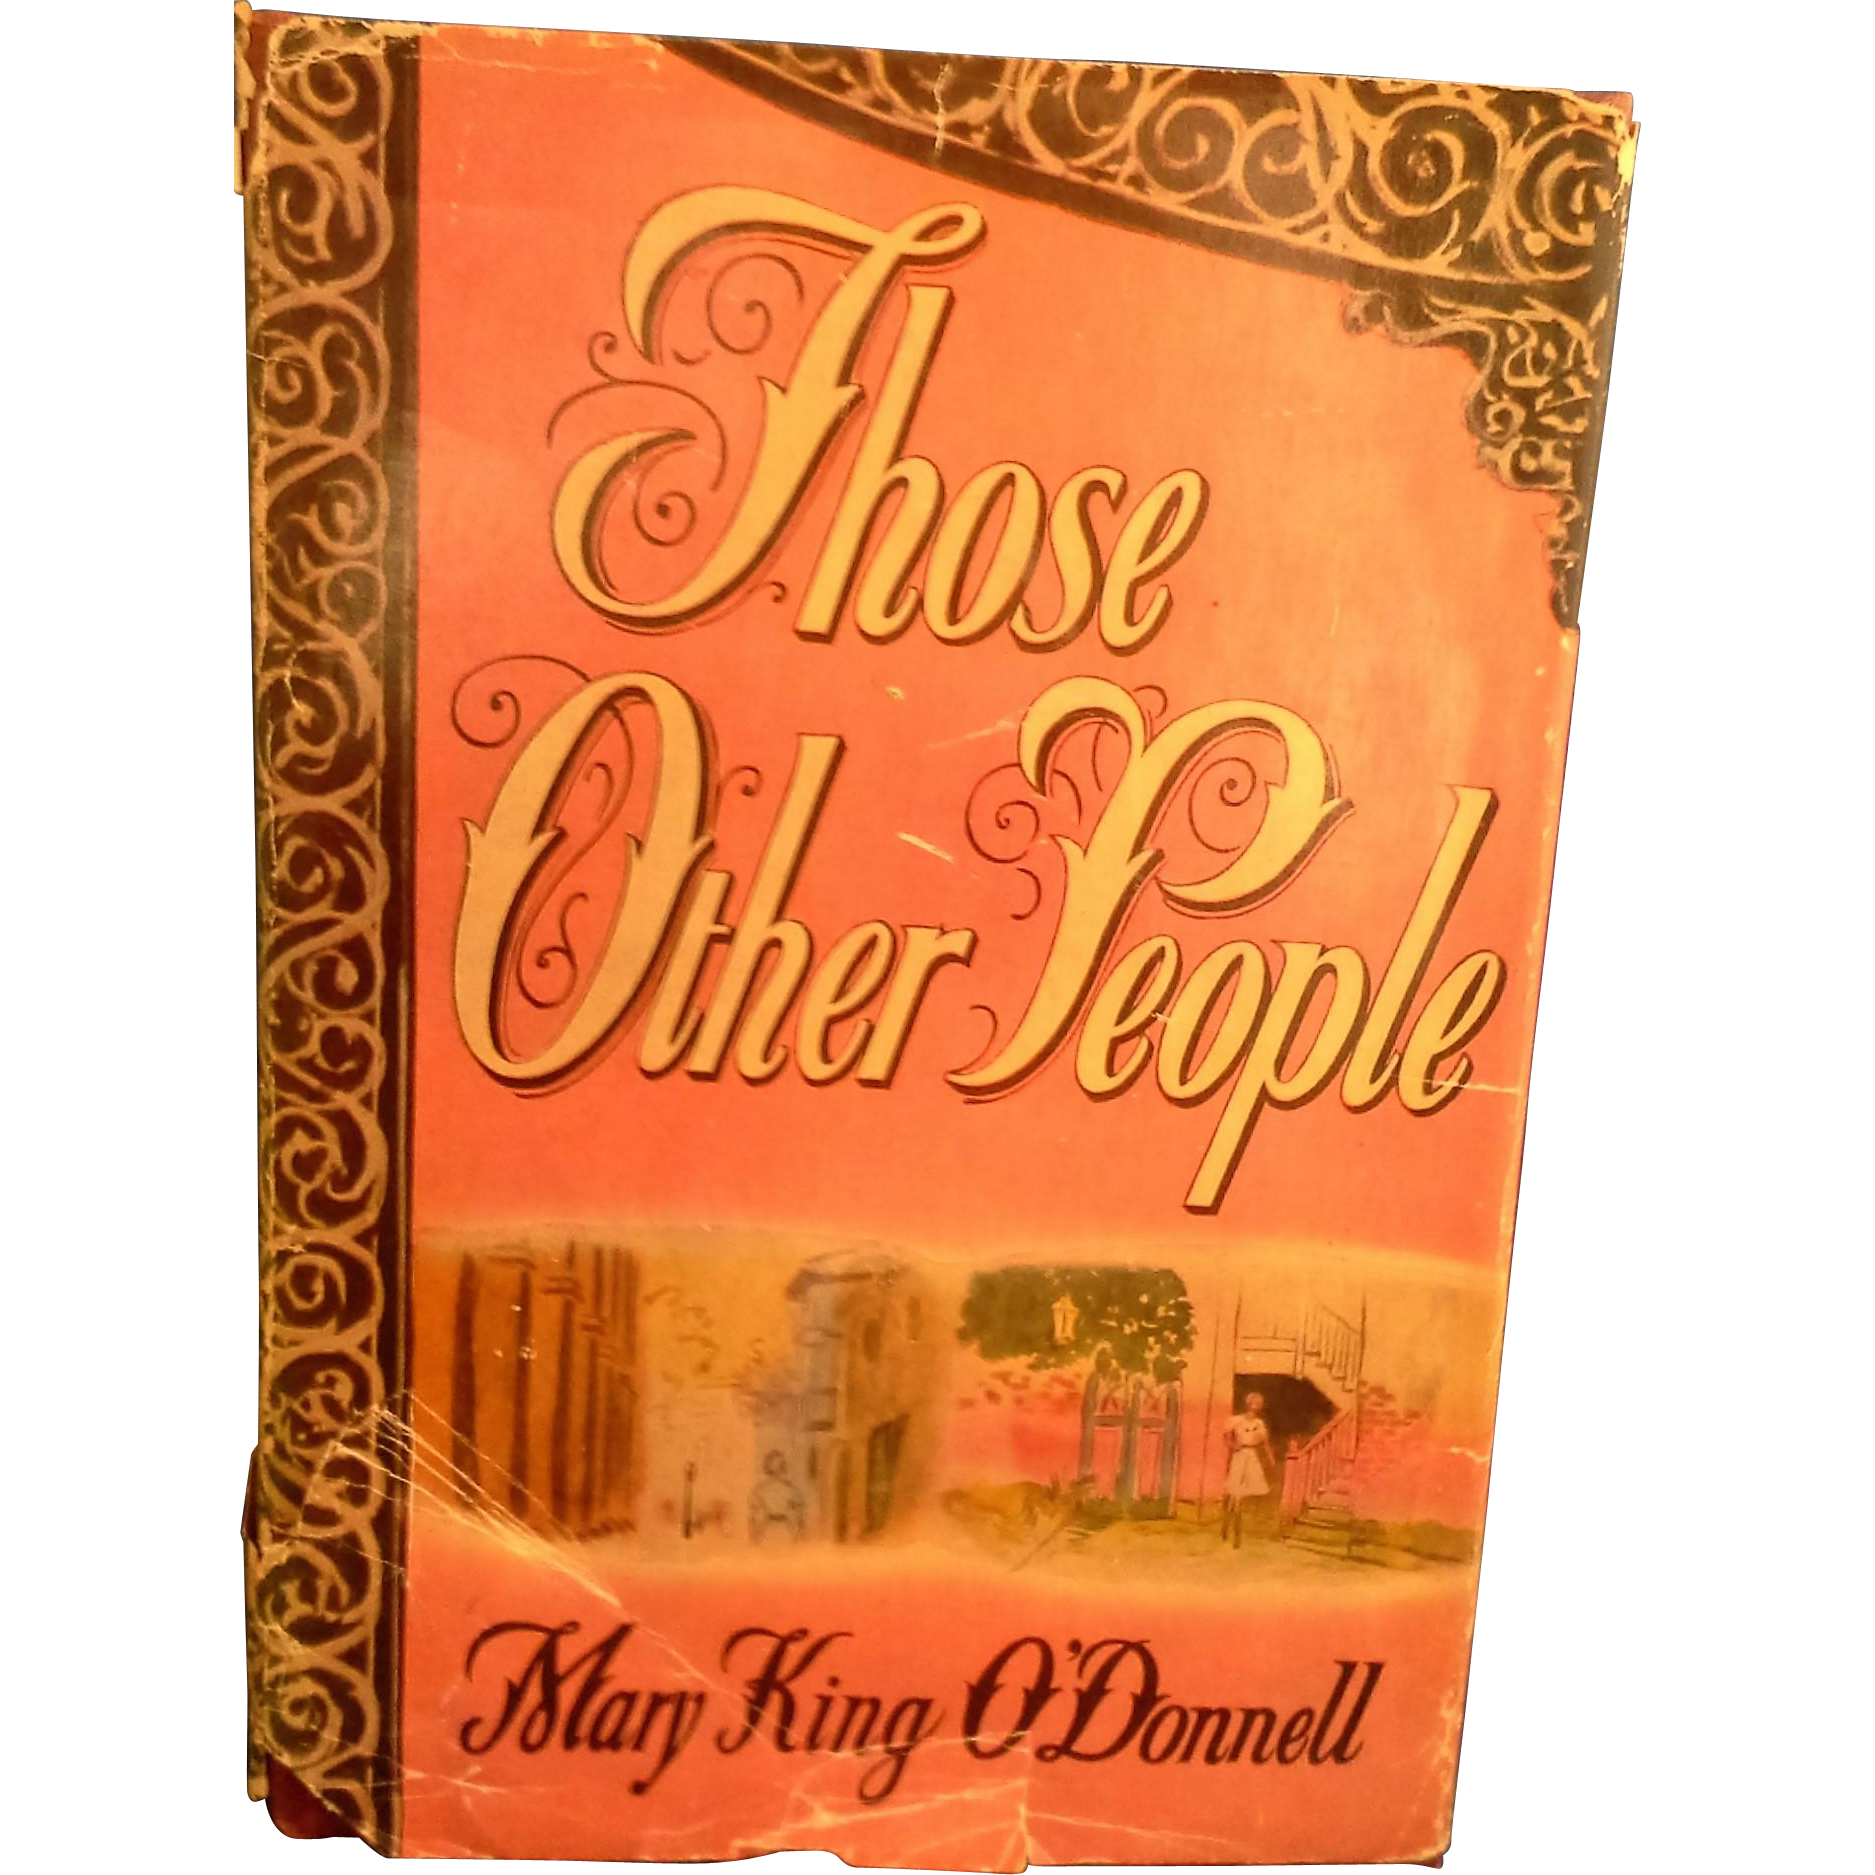 Those Other People by Mary King O'donnell Hardcover Dustjacket 1946